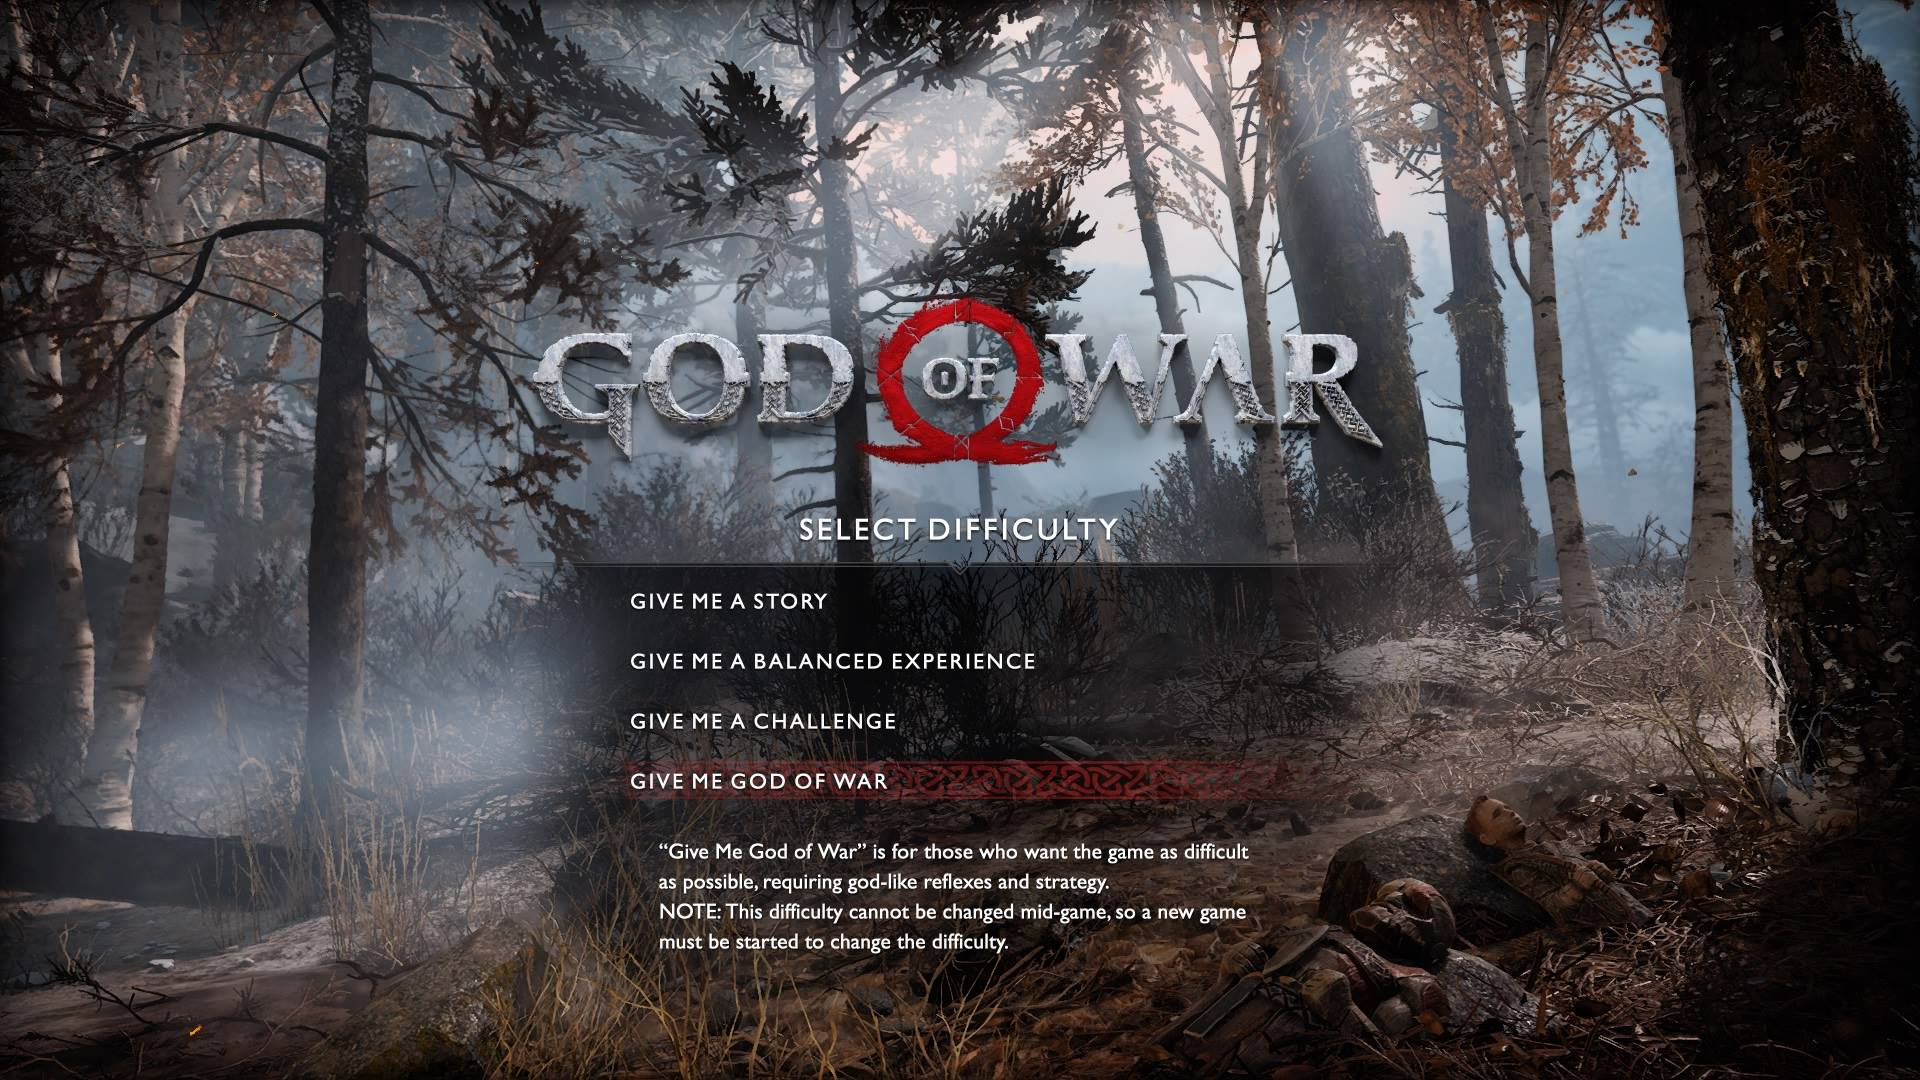 Players can choose the difficulty setting of God of War